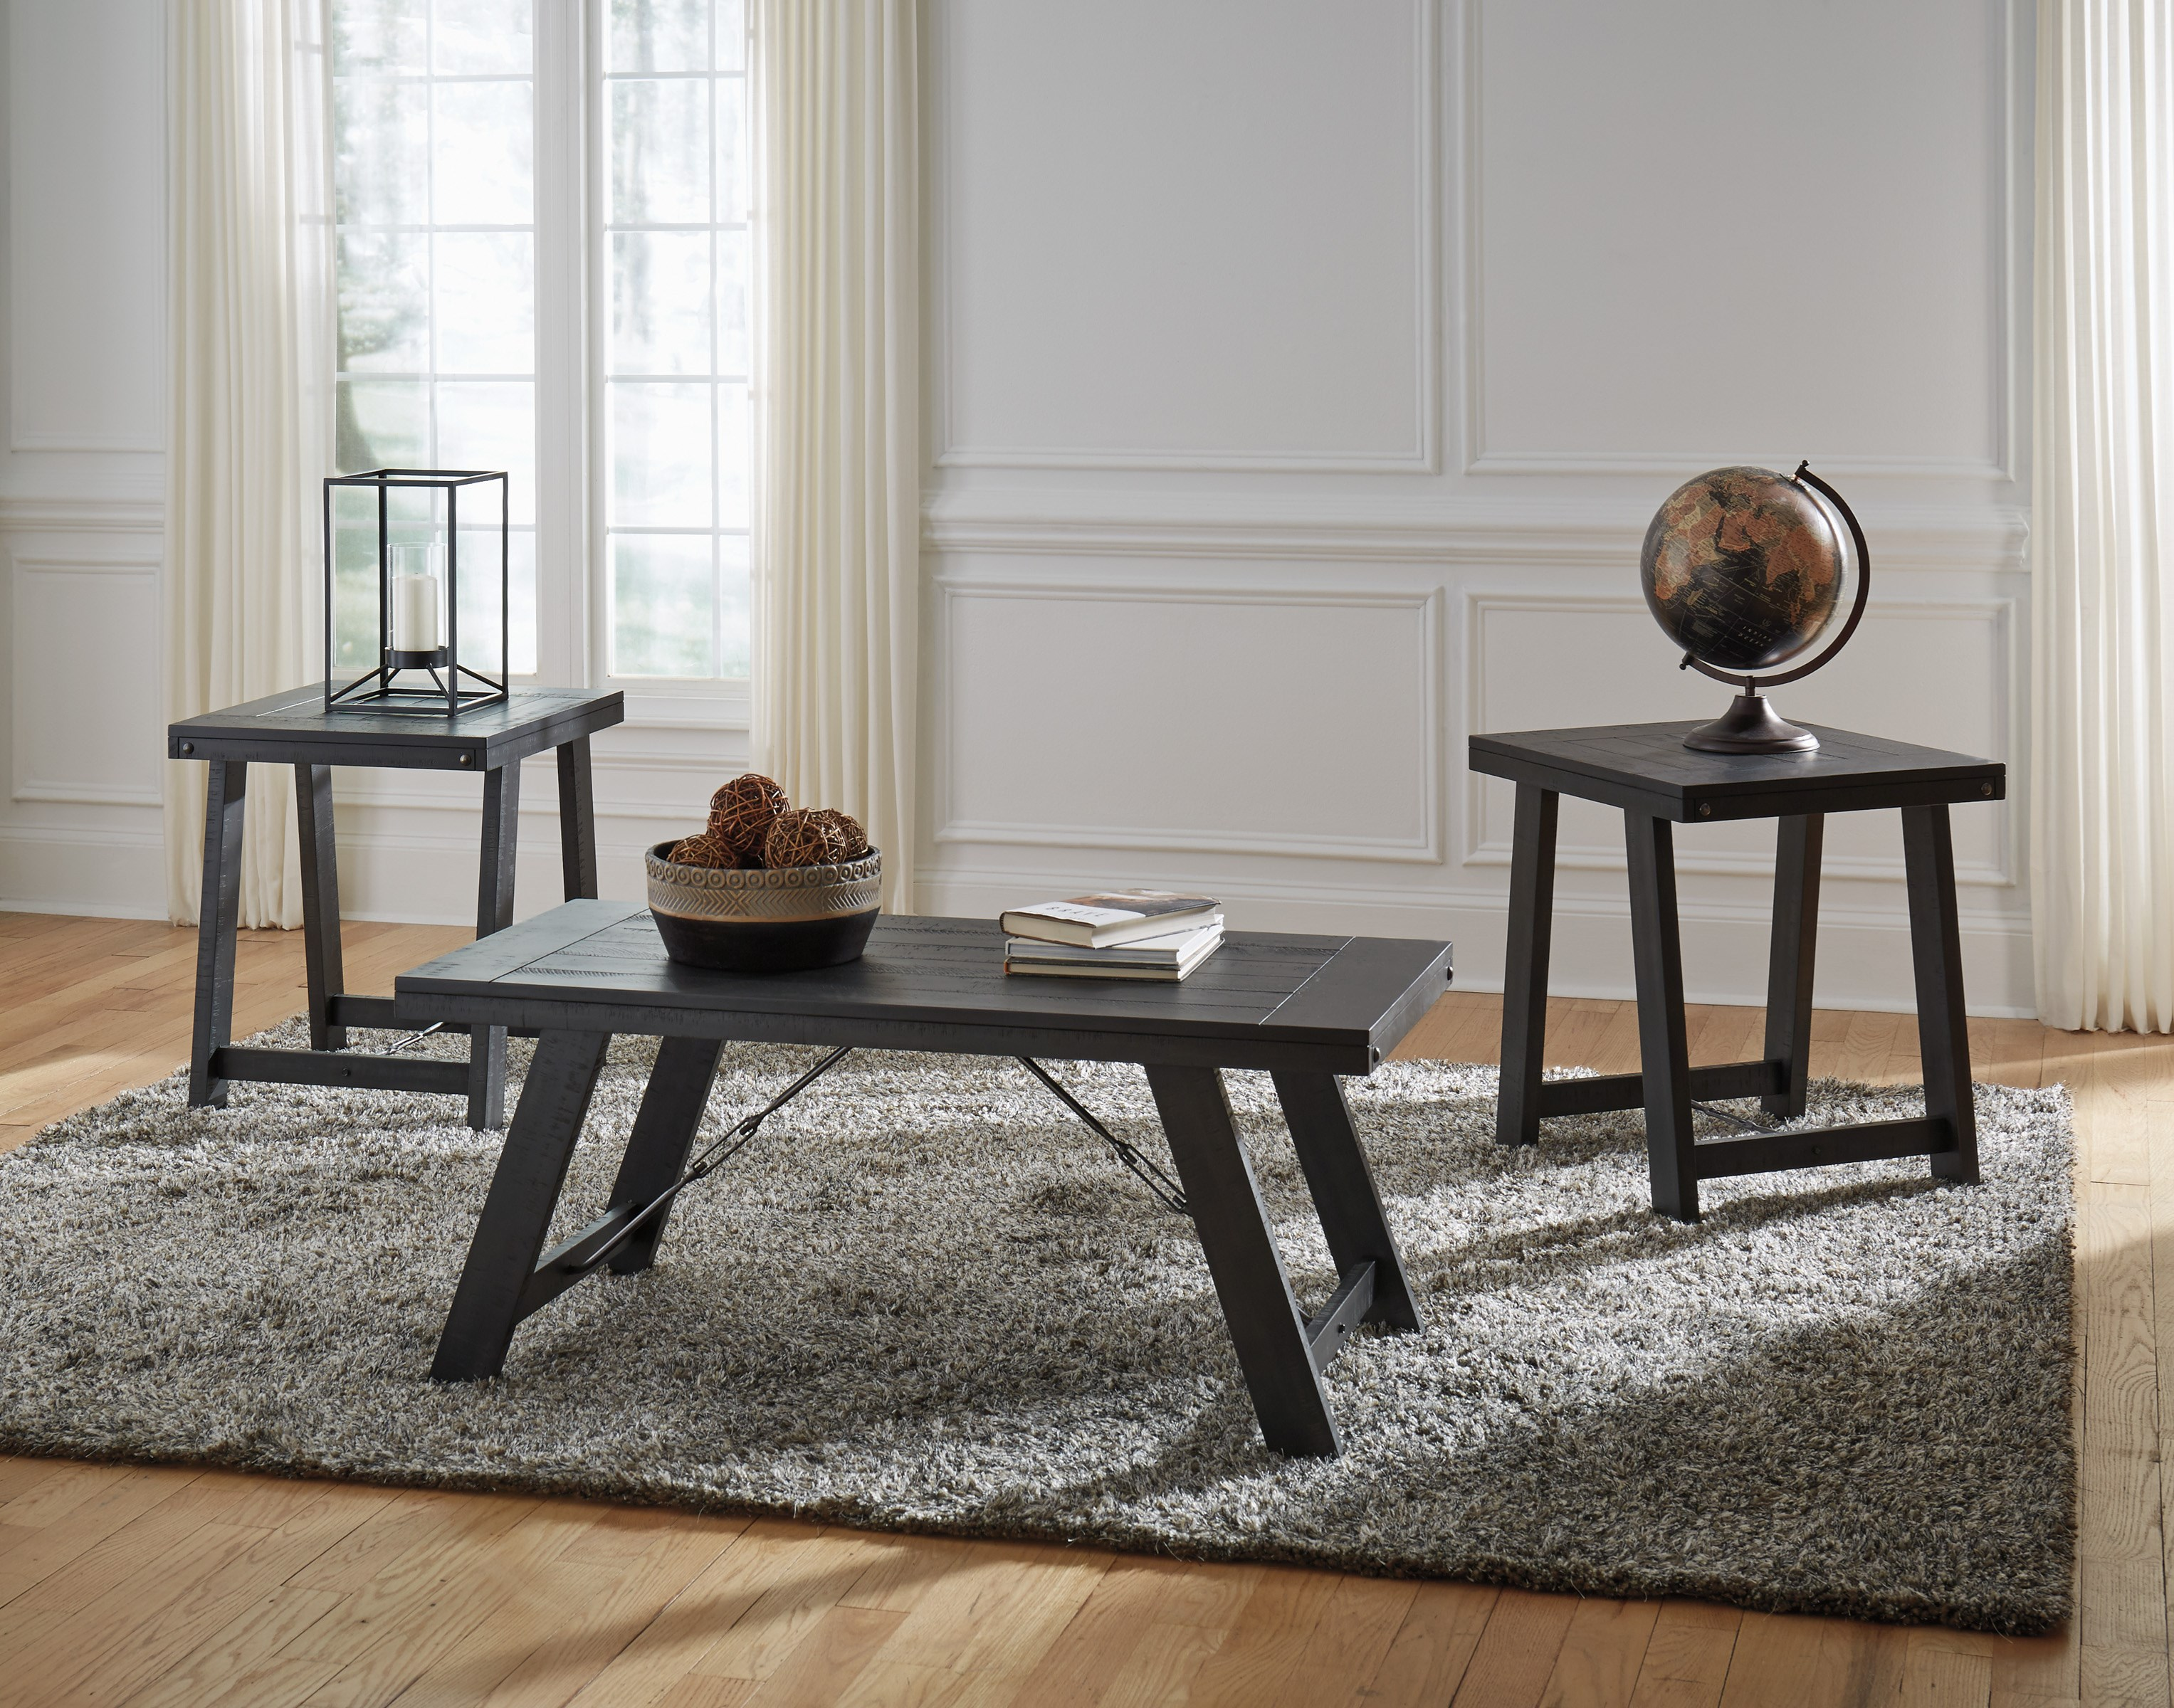 Noorbrook Occasional Table Group by Signature Design by Ashley at Beck's Furniture